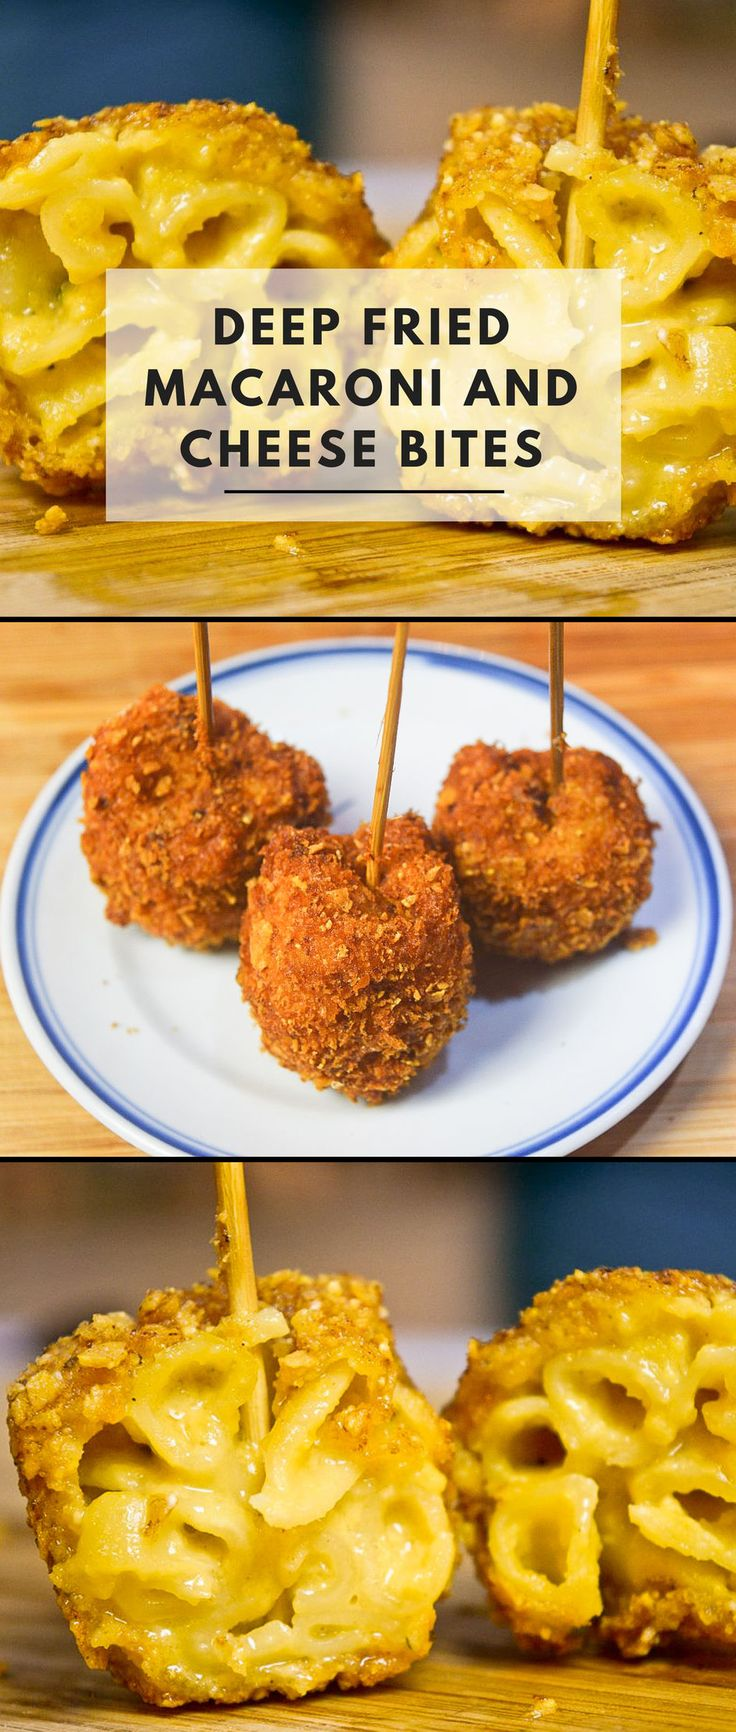 Deep fried macaroni and cheese is the pièce de résistance in the world of gluttonous snacks. The crispy golden exterior crunches down like the jaws of a Great White Shark on the supple leg of creamy smooth macaroni and cheese. It's horrifyingly good.